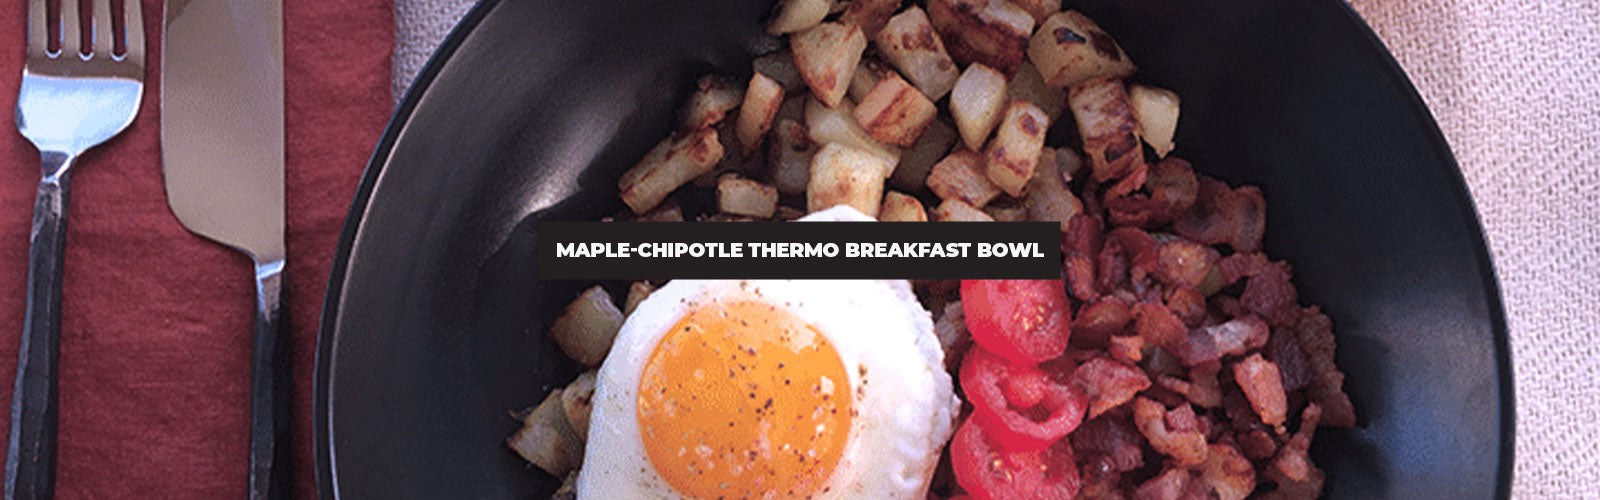 Maple-Chipotle Thermo Breakfast Bowl